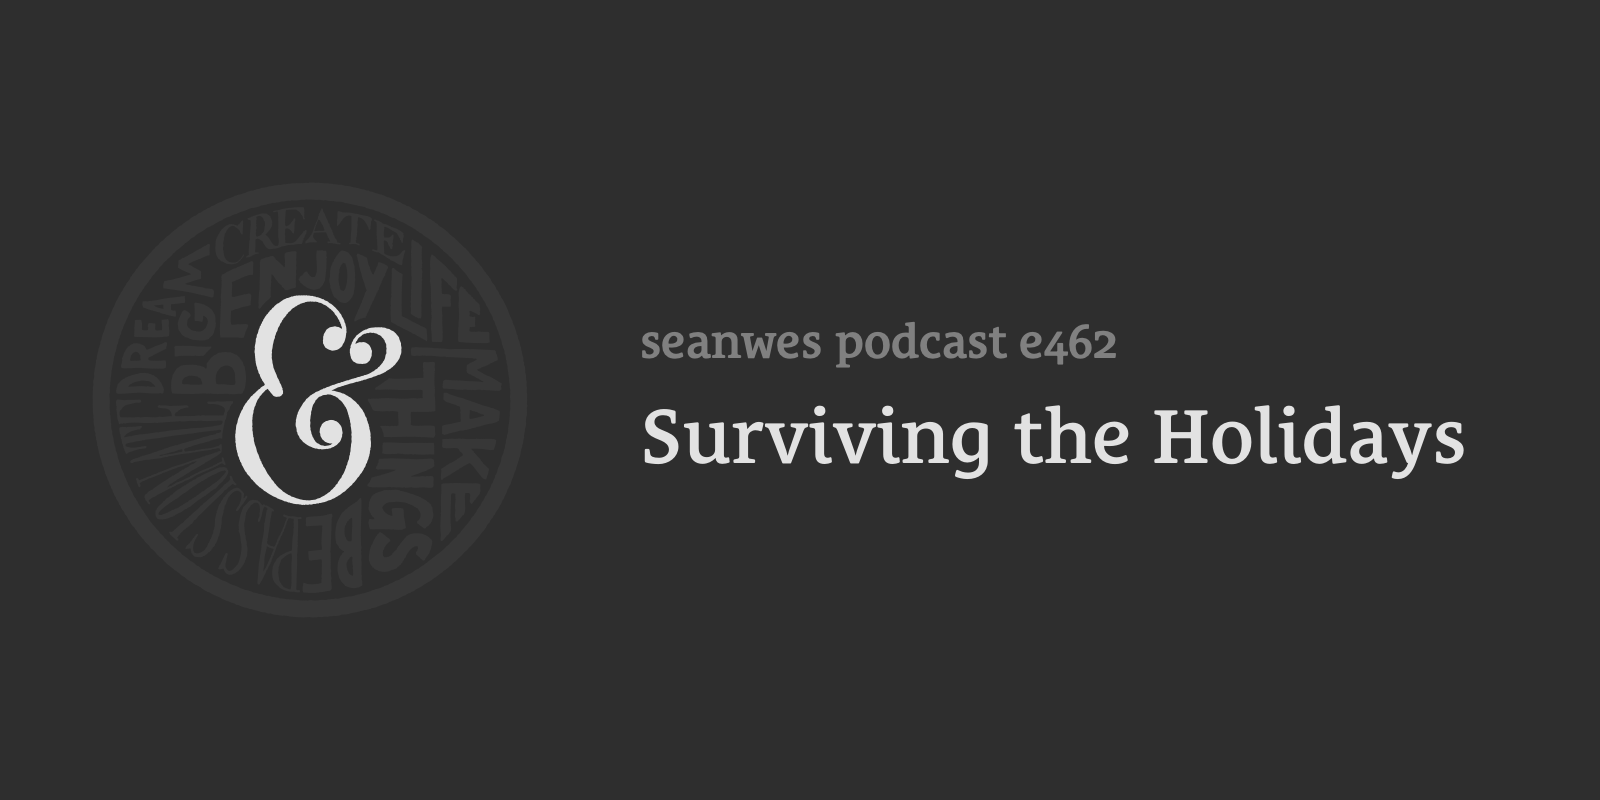 seanwes podcast: Surviving the Holidays